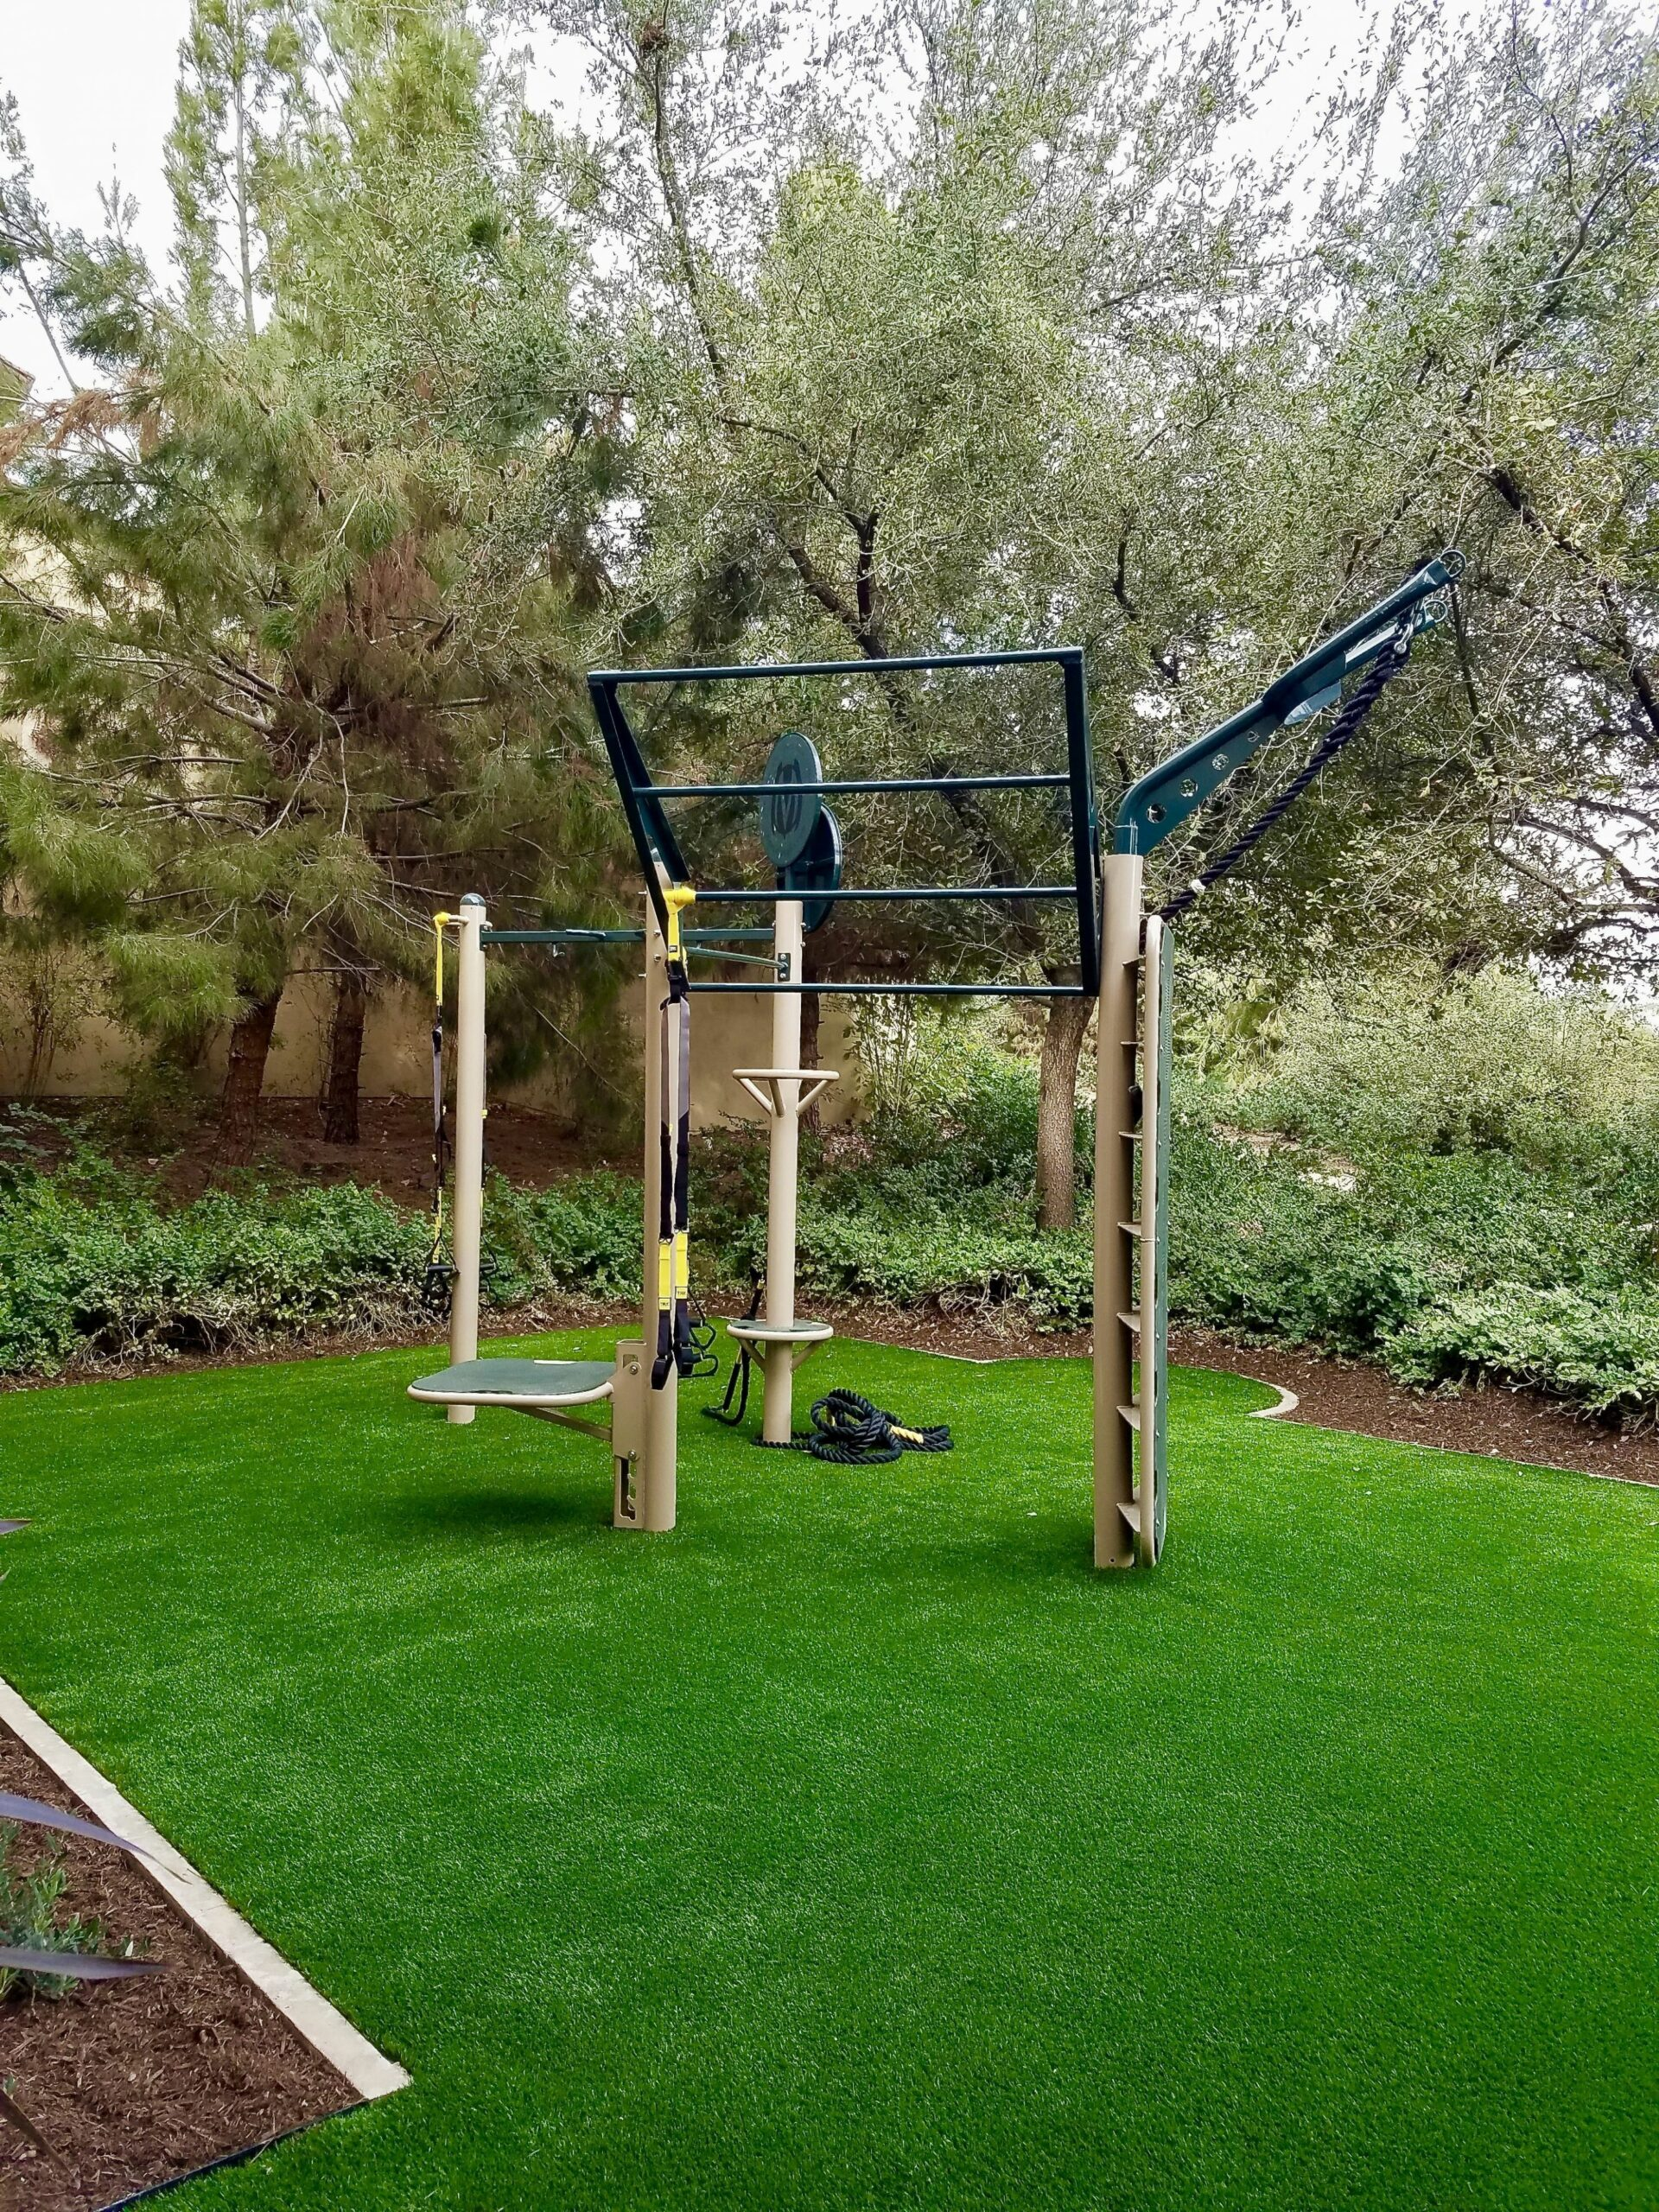 Impressive Backyard Jungle Gym Ideas | Outdoor fitnessgeräte ..